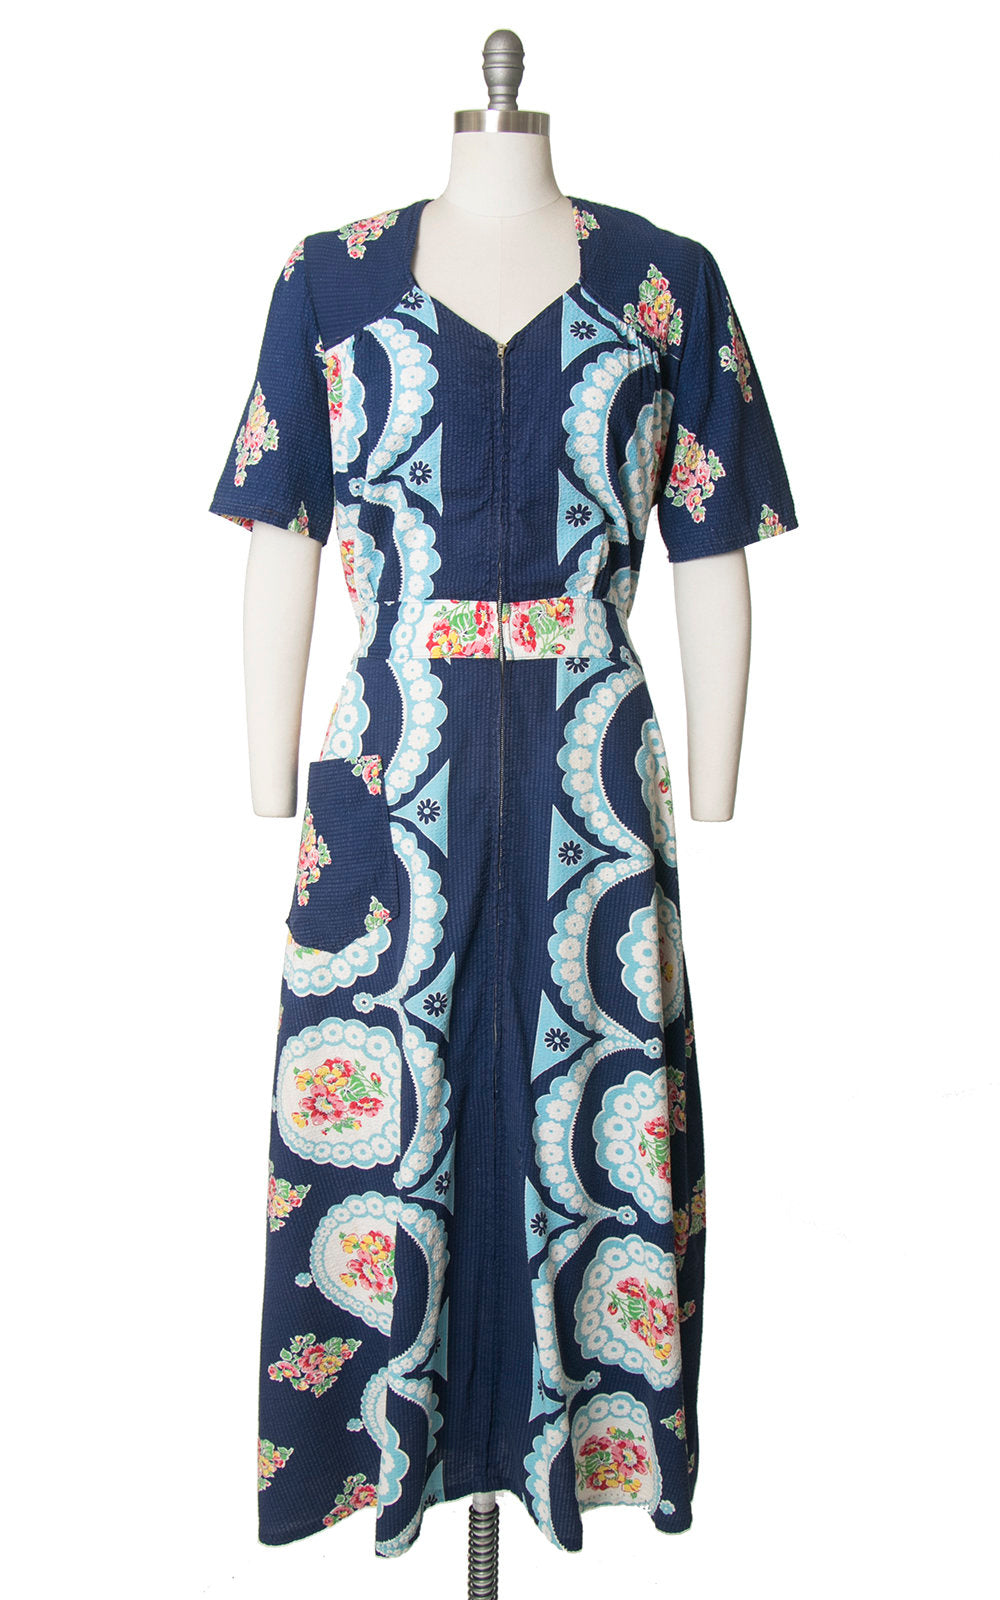 Vintage 1940s Dress | 40s Floral Cotton Dressing Gown Navy Blue Maxi Day House Dress (large/x-large)